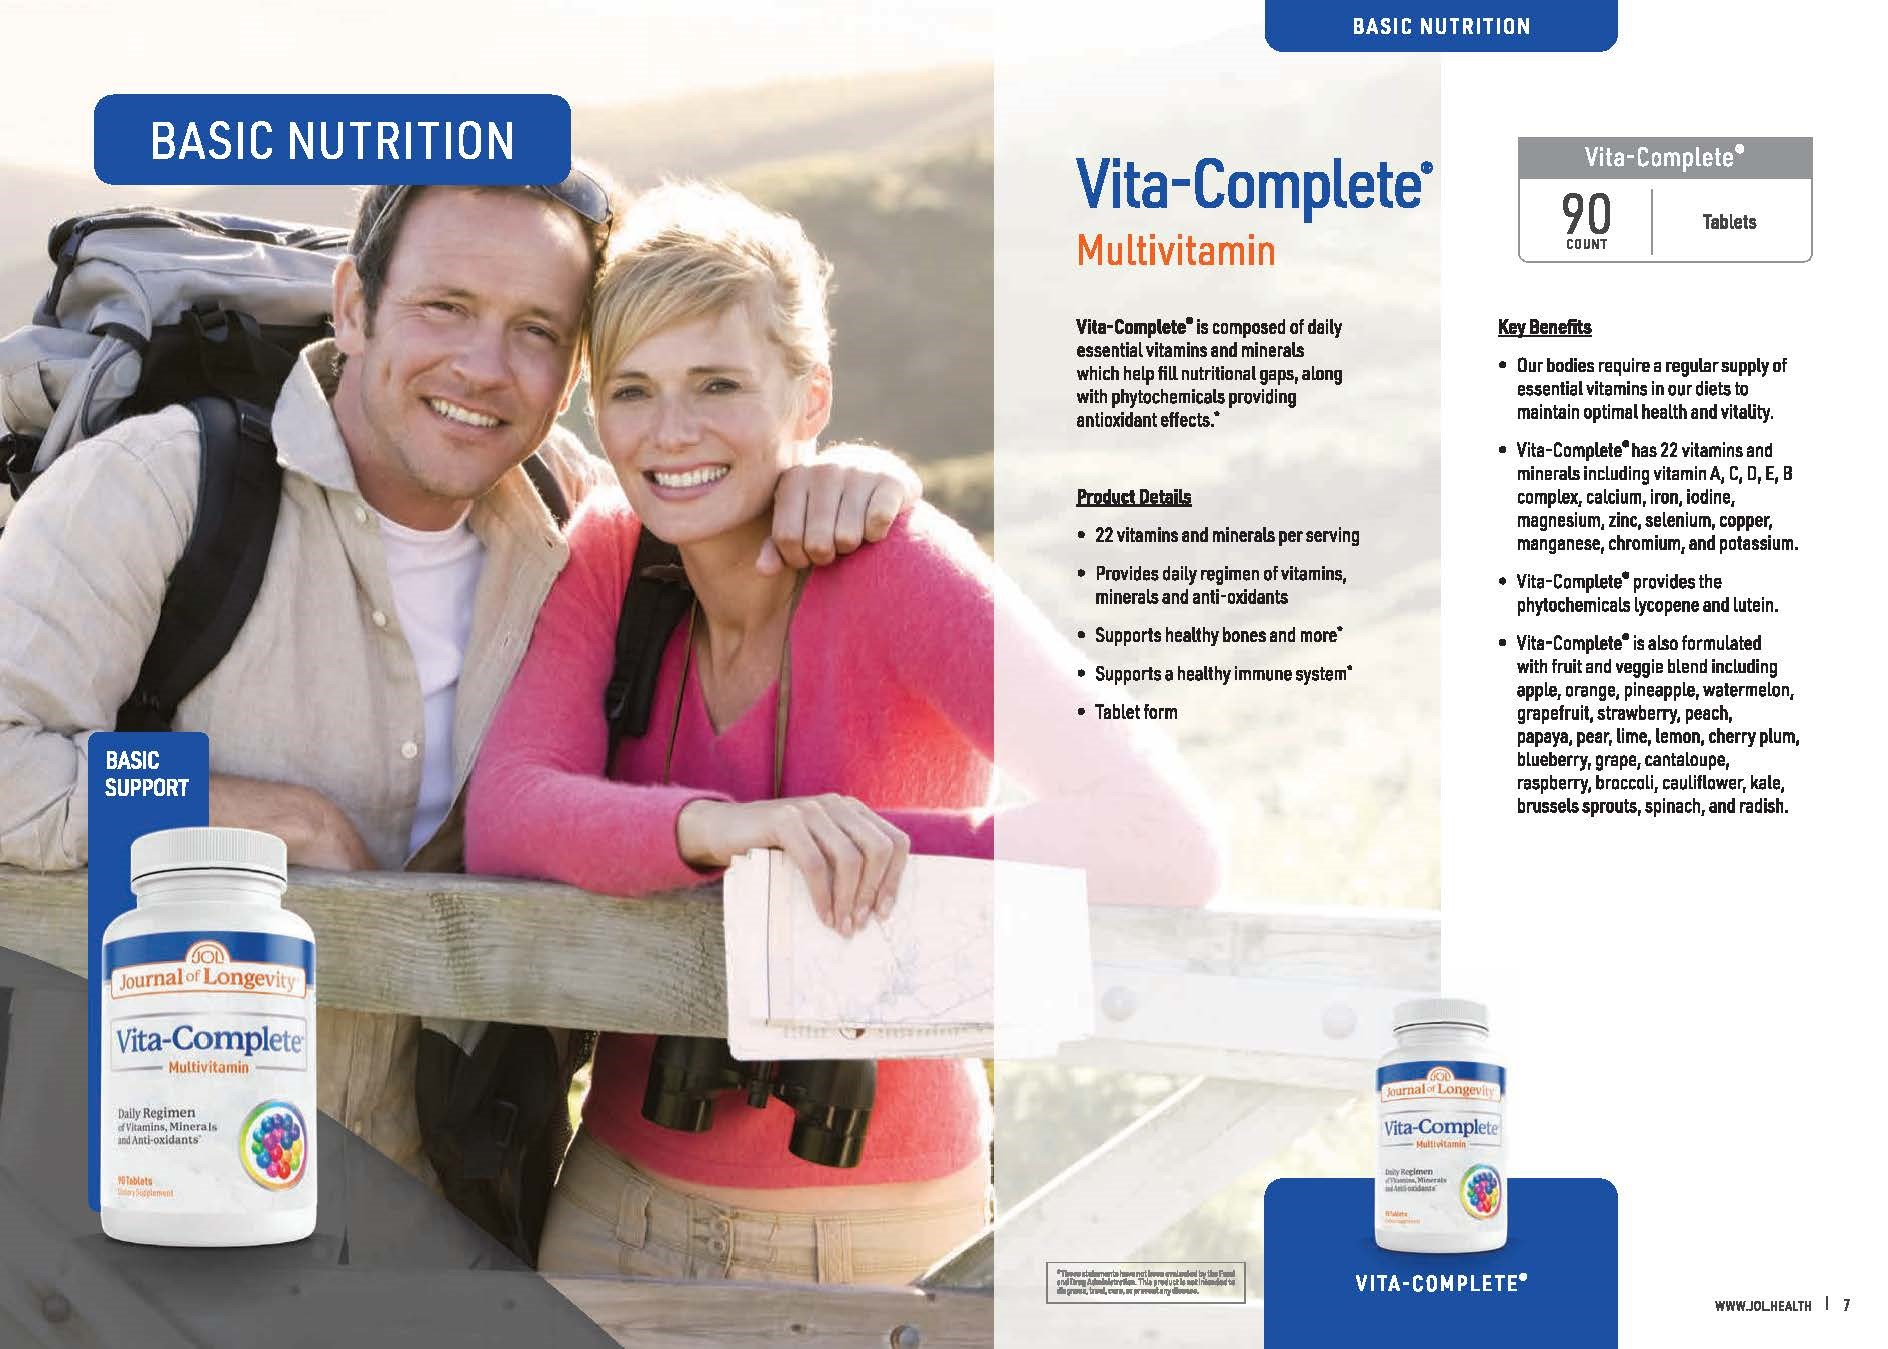 Journal of Longevity Vita-Complete Multivitamin Tablet With 22 Vitamins and Minerals Nutrition Supplement